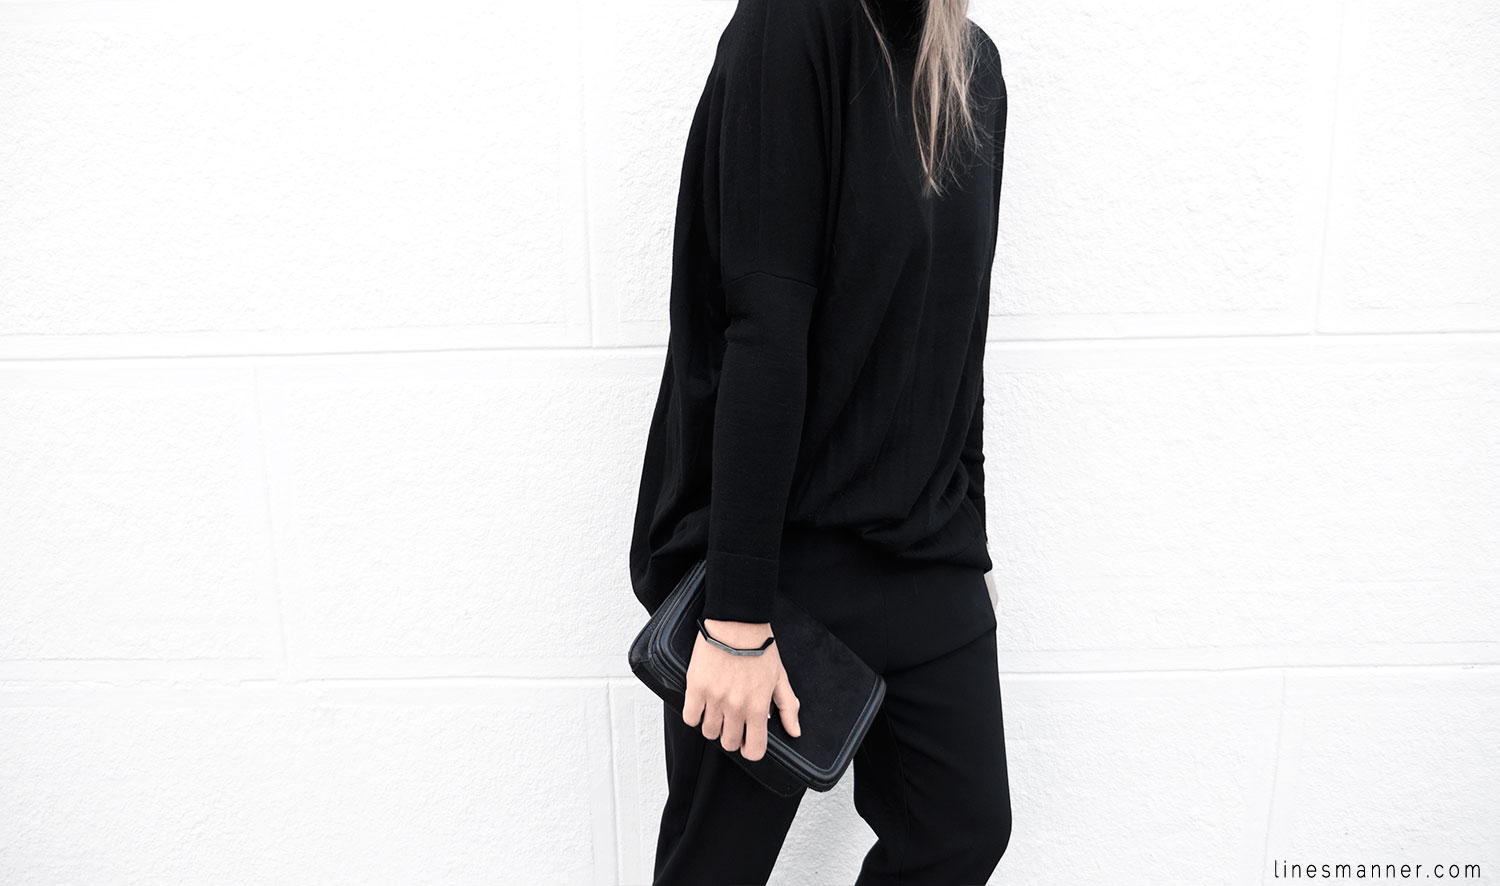 Lines-Manner-Remind-2015-Minimal-Essential-Outfit-Inspiration-Blog-Timeless-Year-Seasons-Details-Travel-Fashion-Versatile-Clean-Sleek-Quality-70